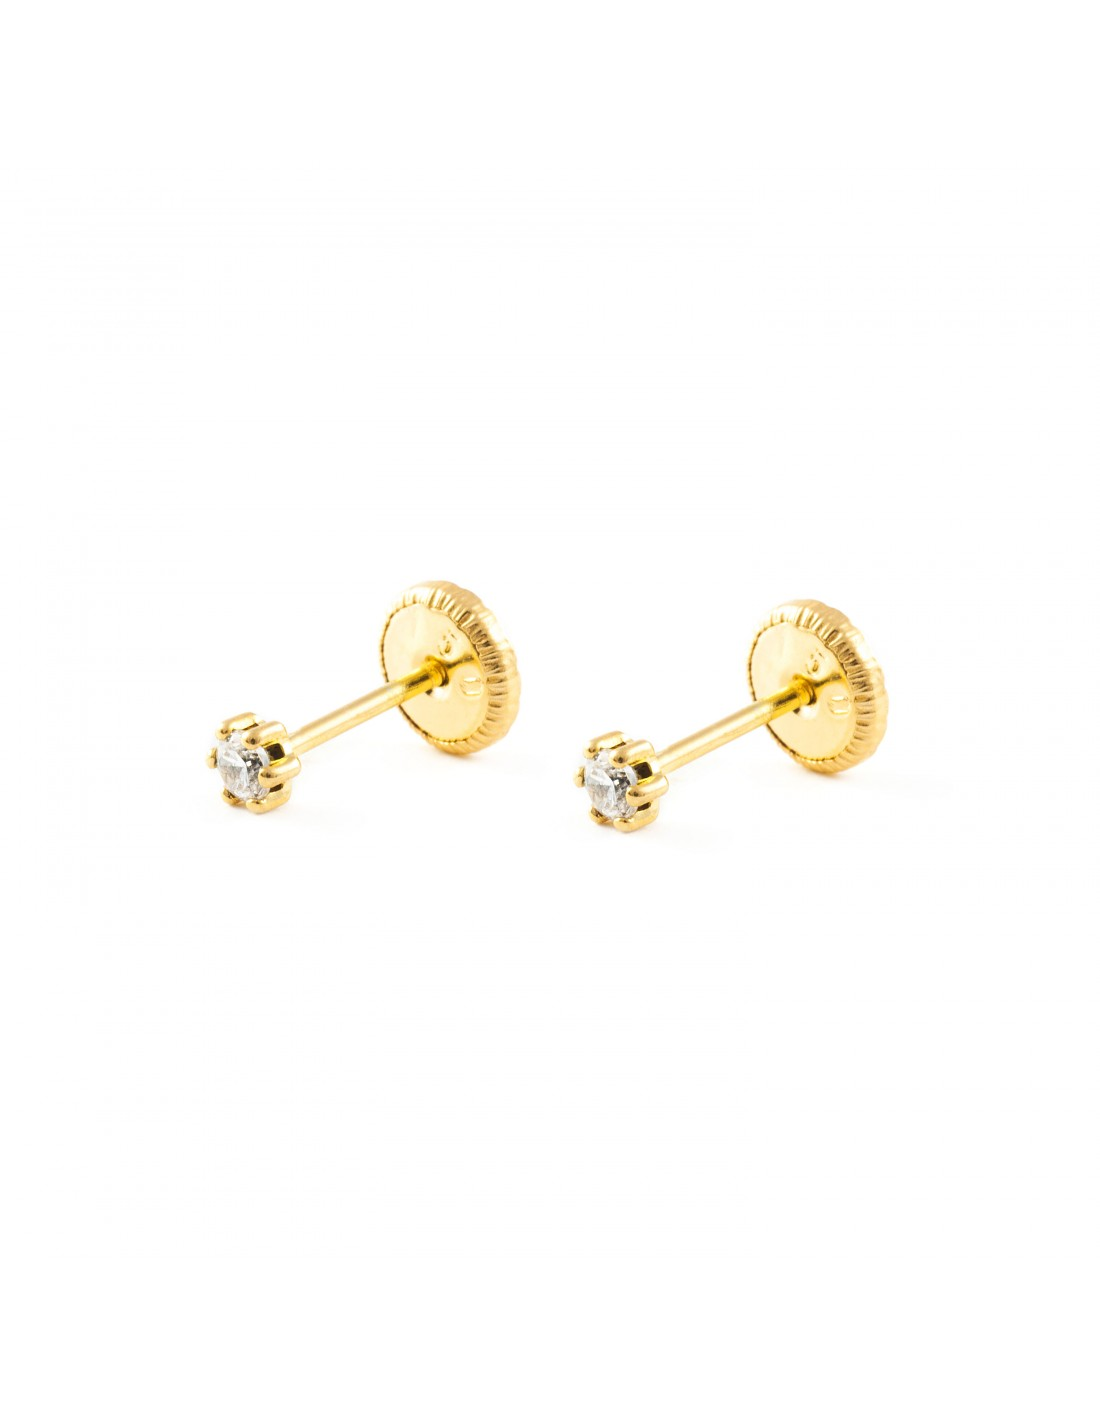 boucles d 39 oreilles enfant zircon or jaune 18 carats. Black Bedroom Furniture Sets. Home Design Ideas